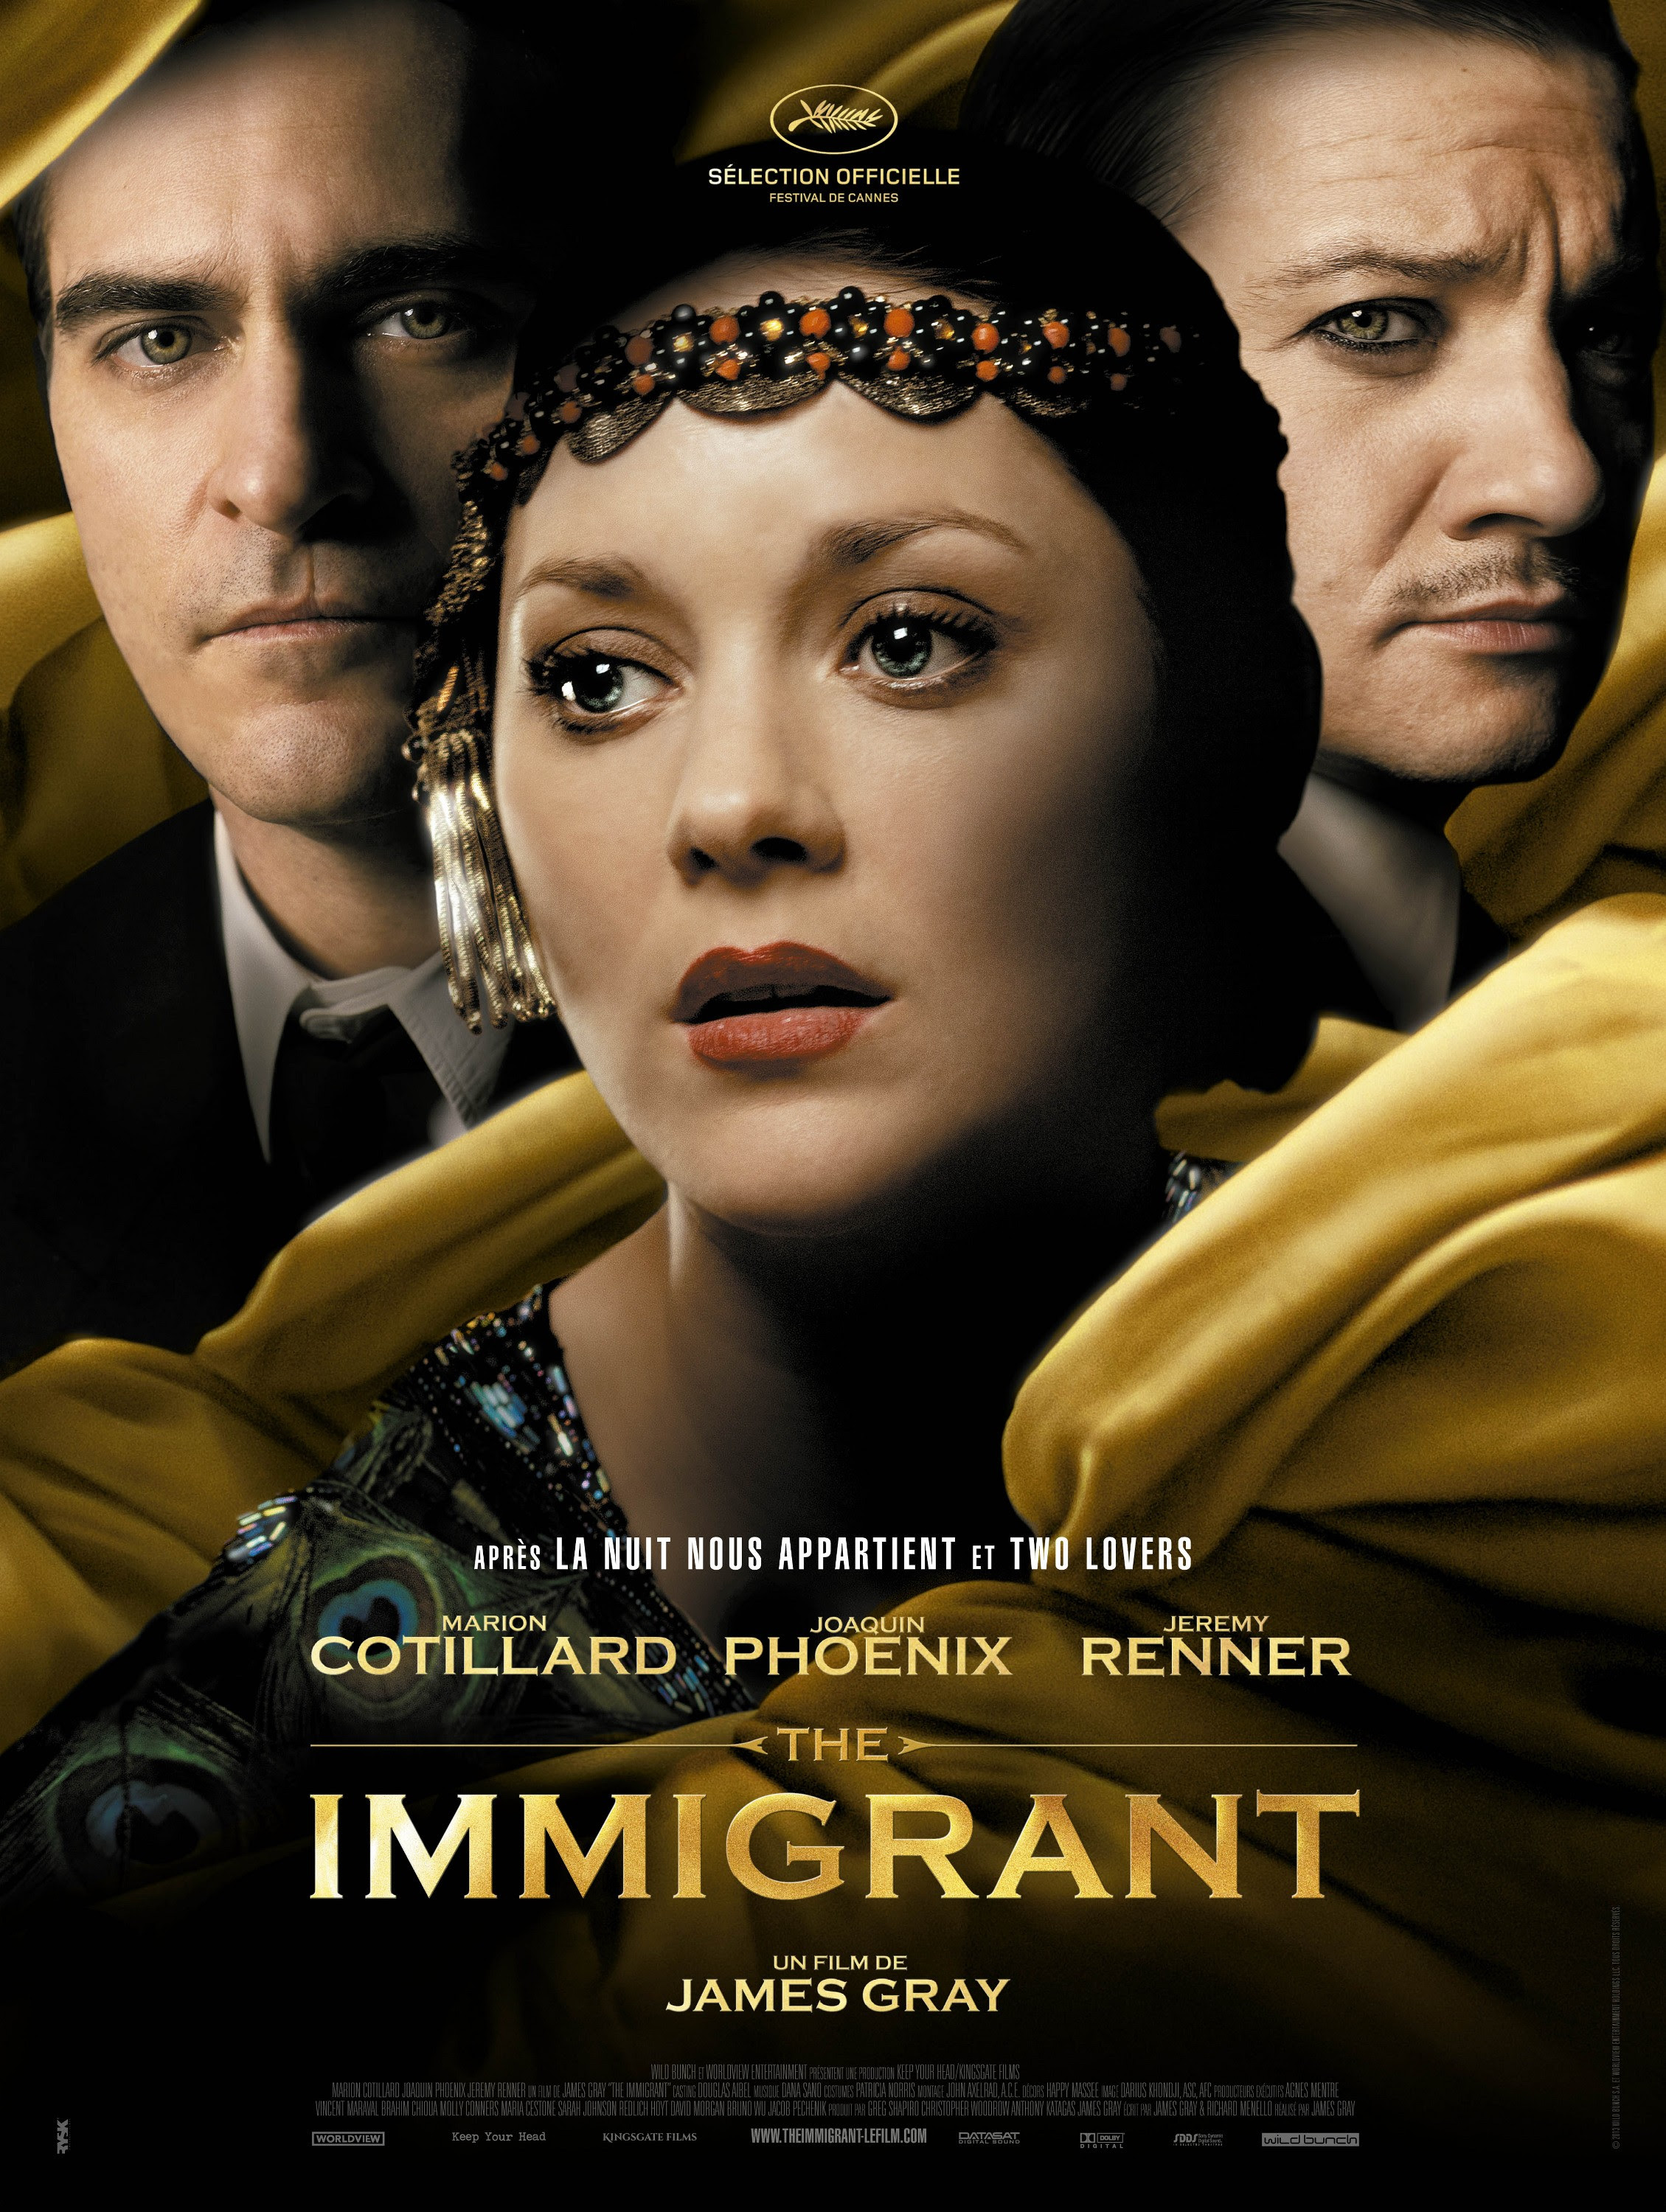 Resultado de imagen para the immigrant movie poster